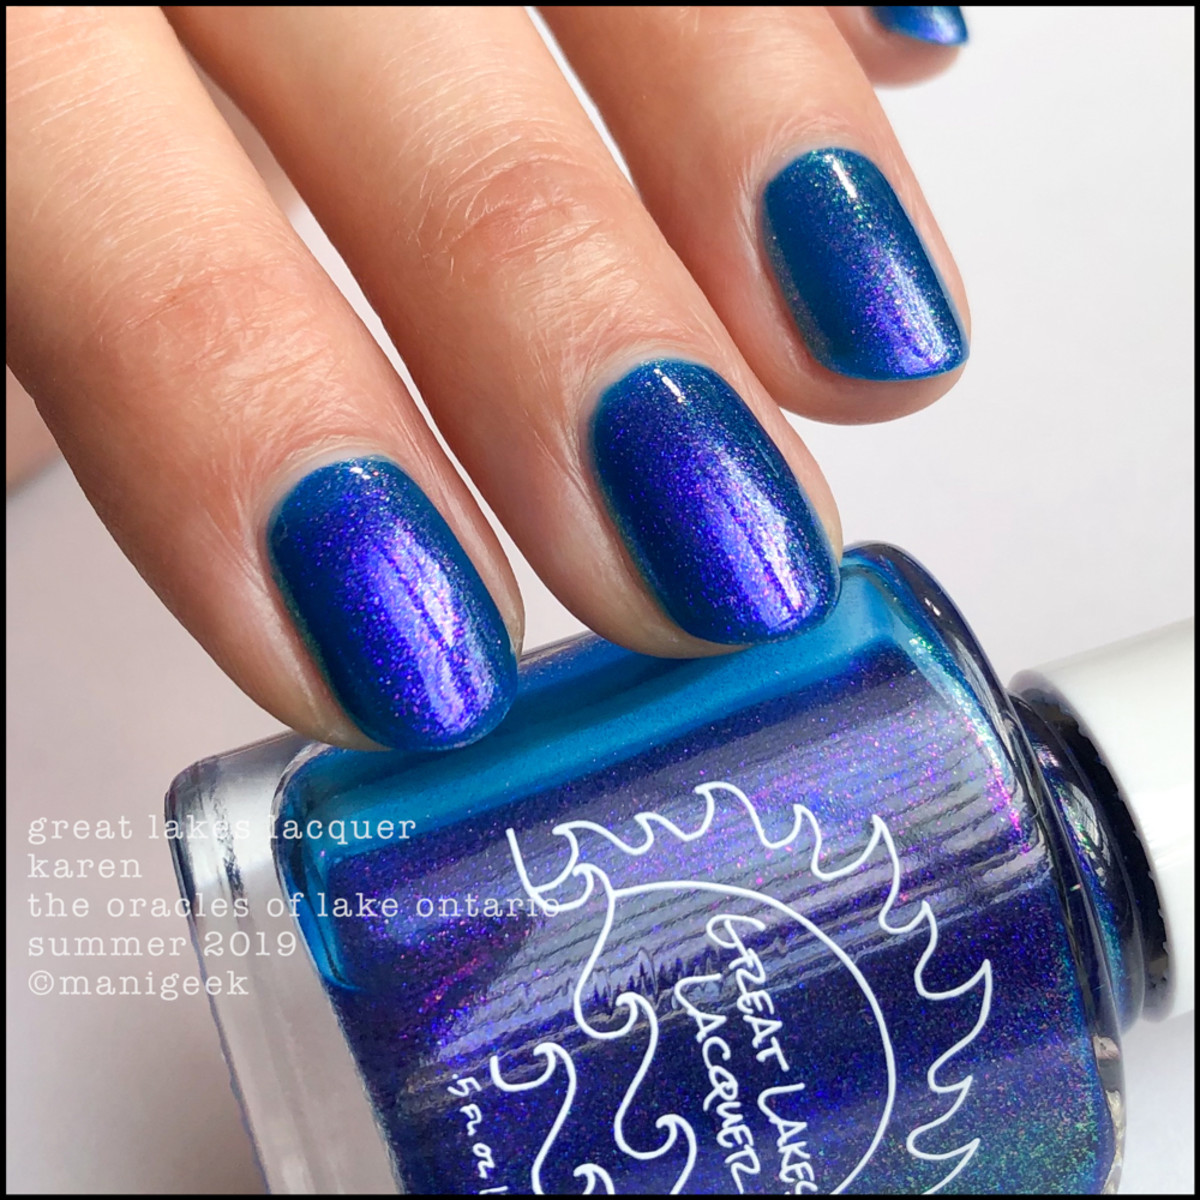 Great Lakes Lacquer Oracles of Lake Ontario Karen - LE IEC 2019 4